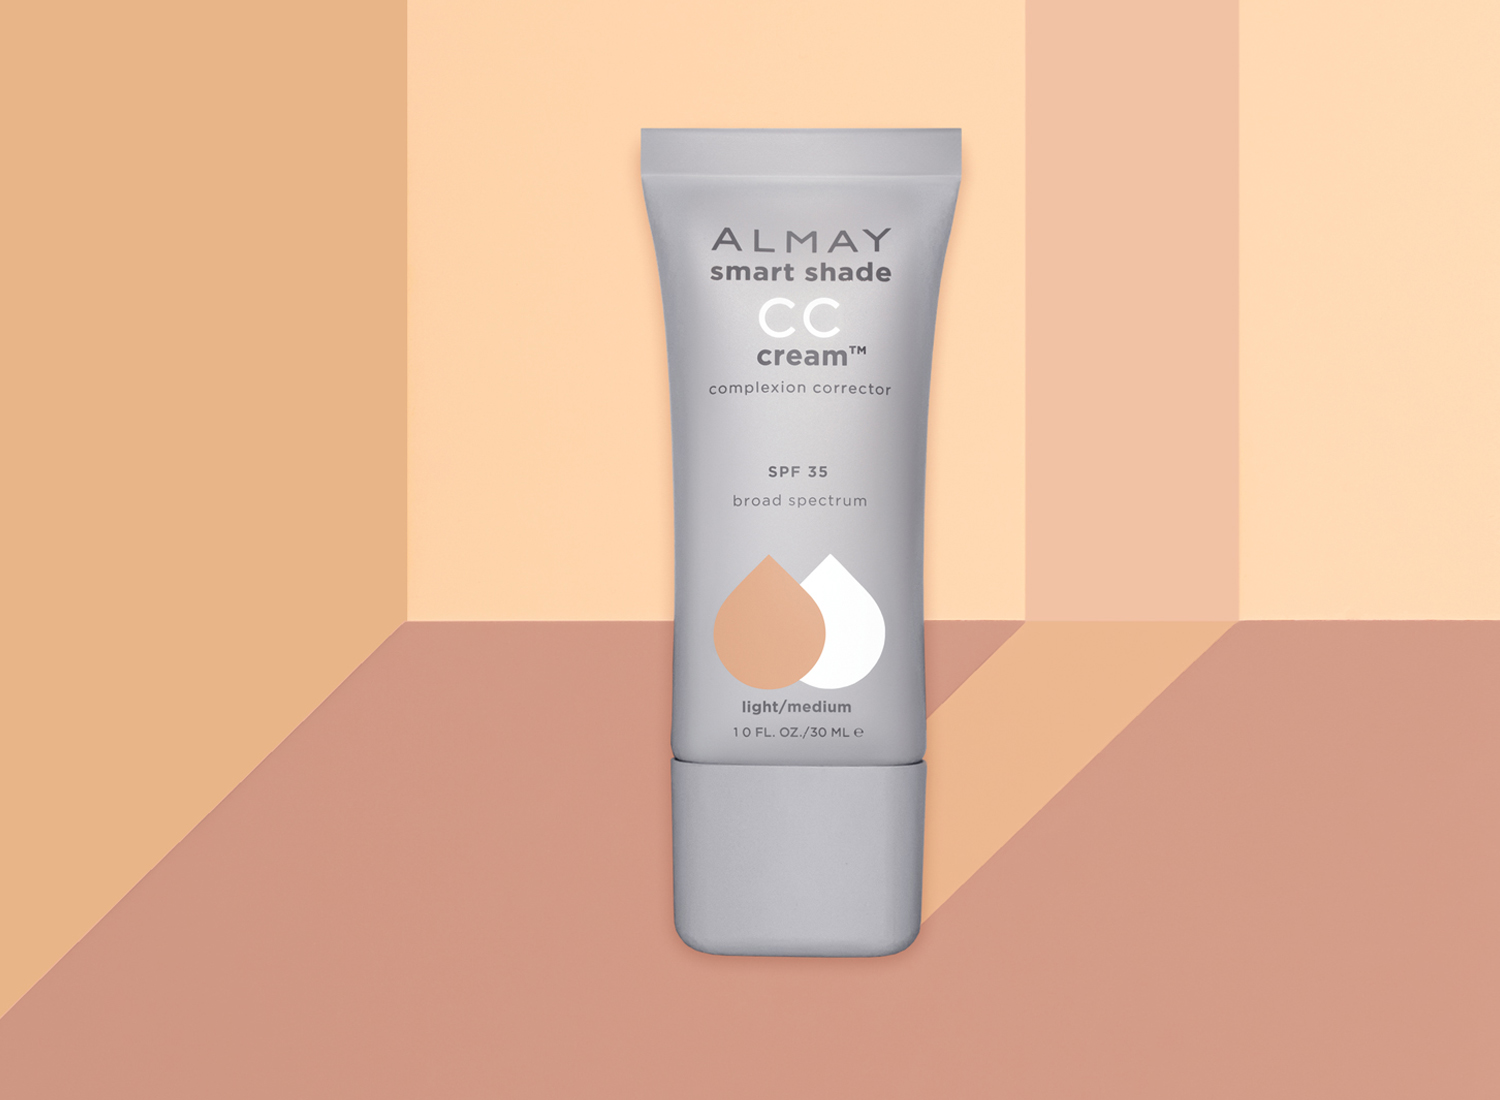 Almay is an accessible beauty brand for sensitive skin. The brand had lost its luster and the shelf was housing so many sub-brands it was hard to navigate. Our team created a modern identity and packaging system that invited customers to play with their make-up while knowing they were taking care of their skin.  -